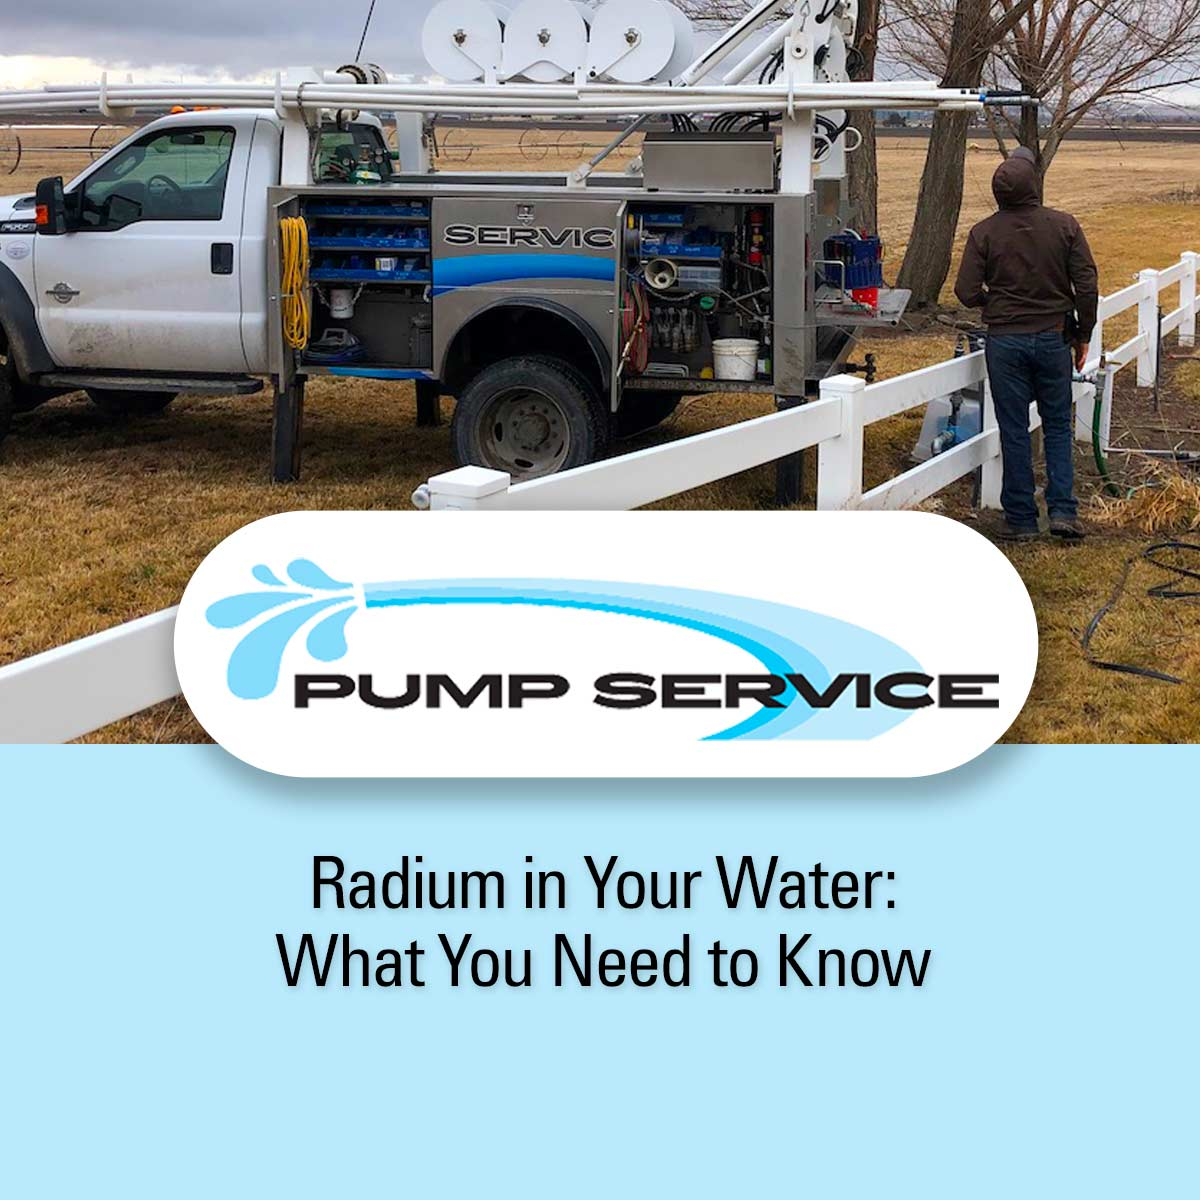 Radium in Your Water: What You Need to Know